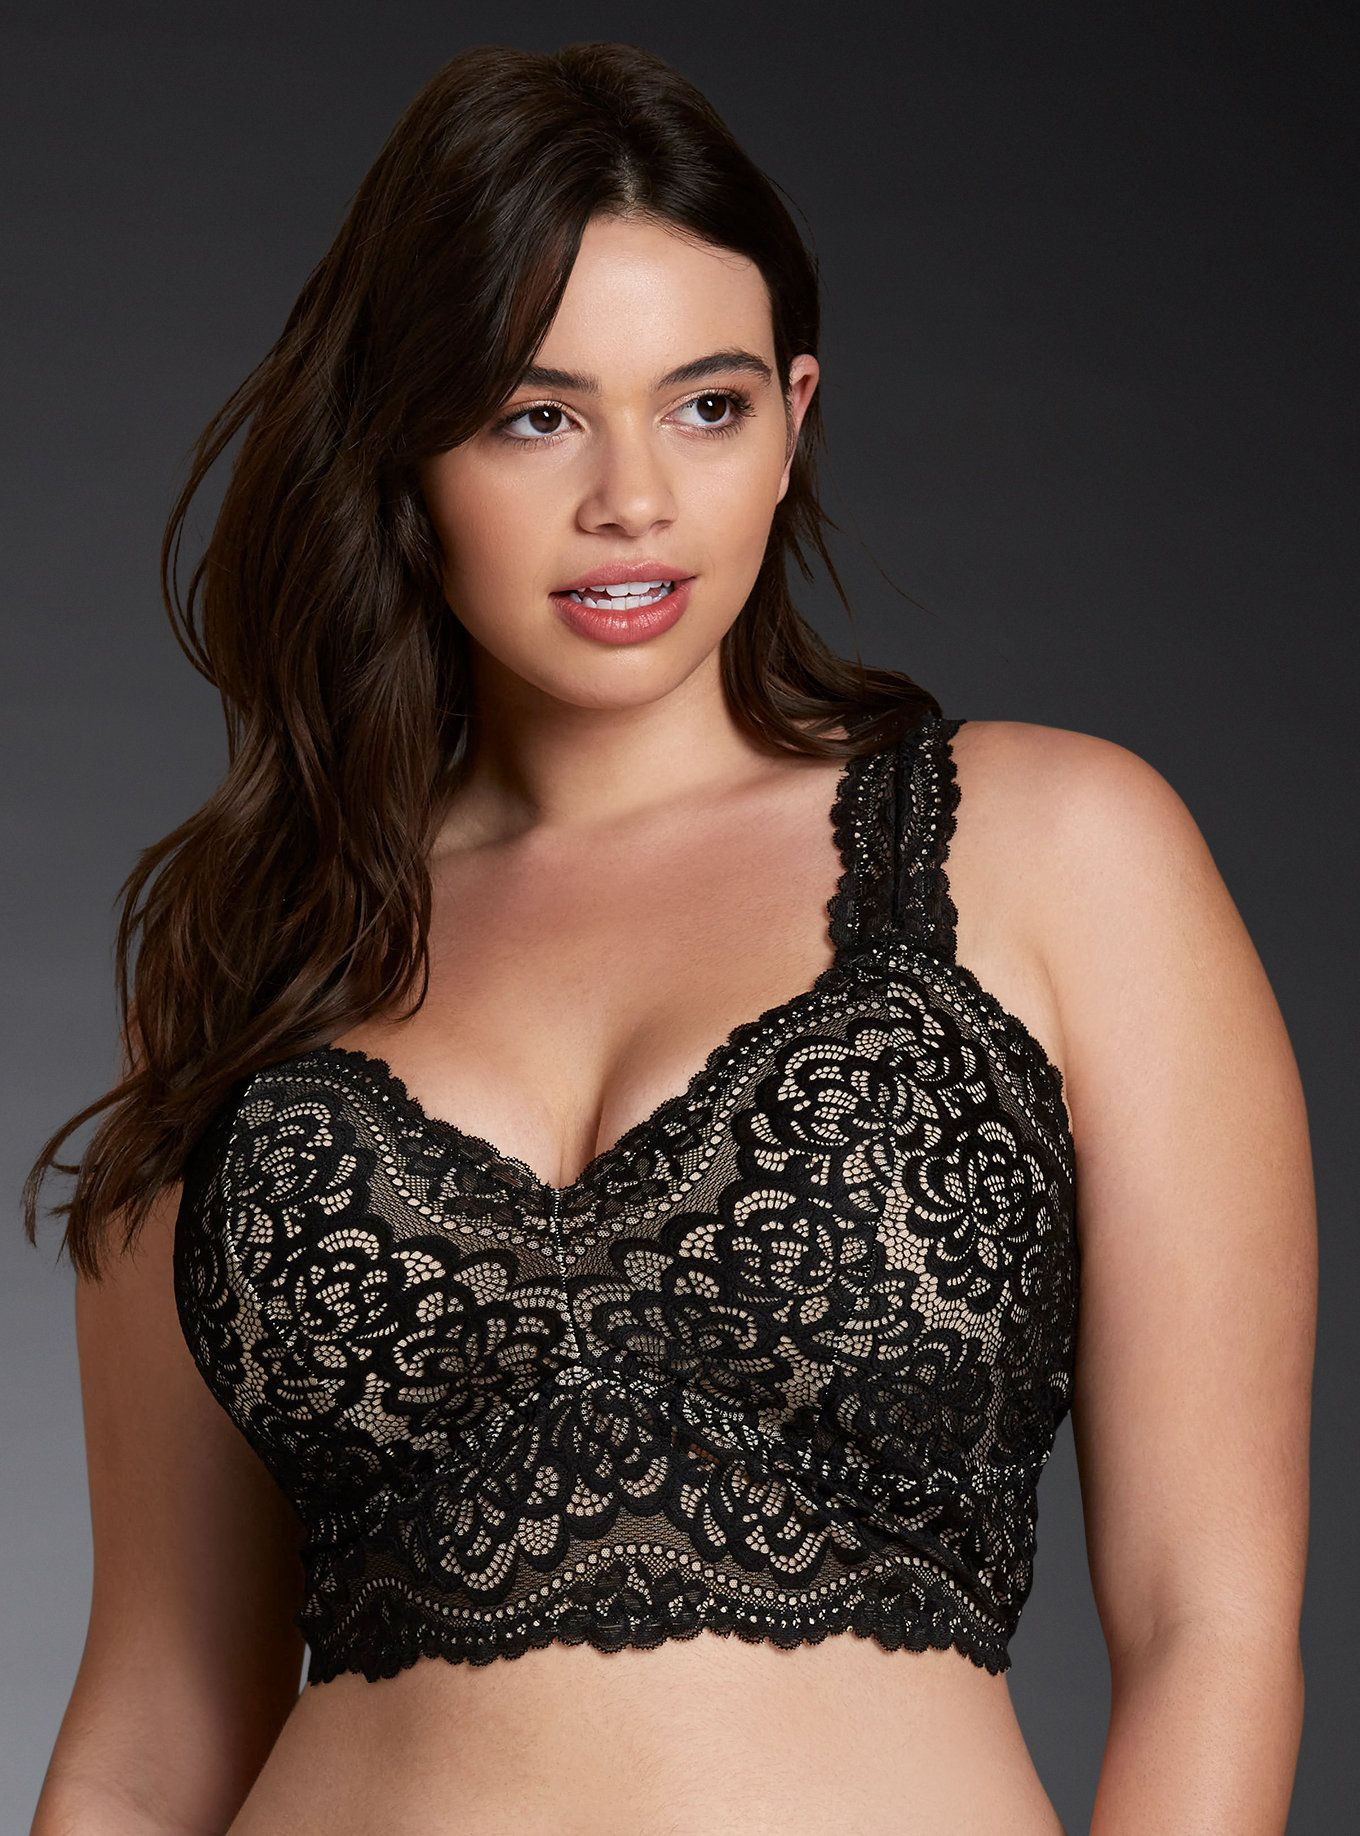 28353262692f12 A bralette so cute you re gonna be tempted to show off (and you should).  The wireless racerback style is totally comfy with a stretchy fit  the  black lace ...